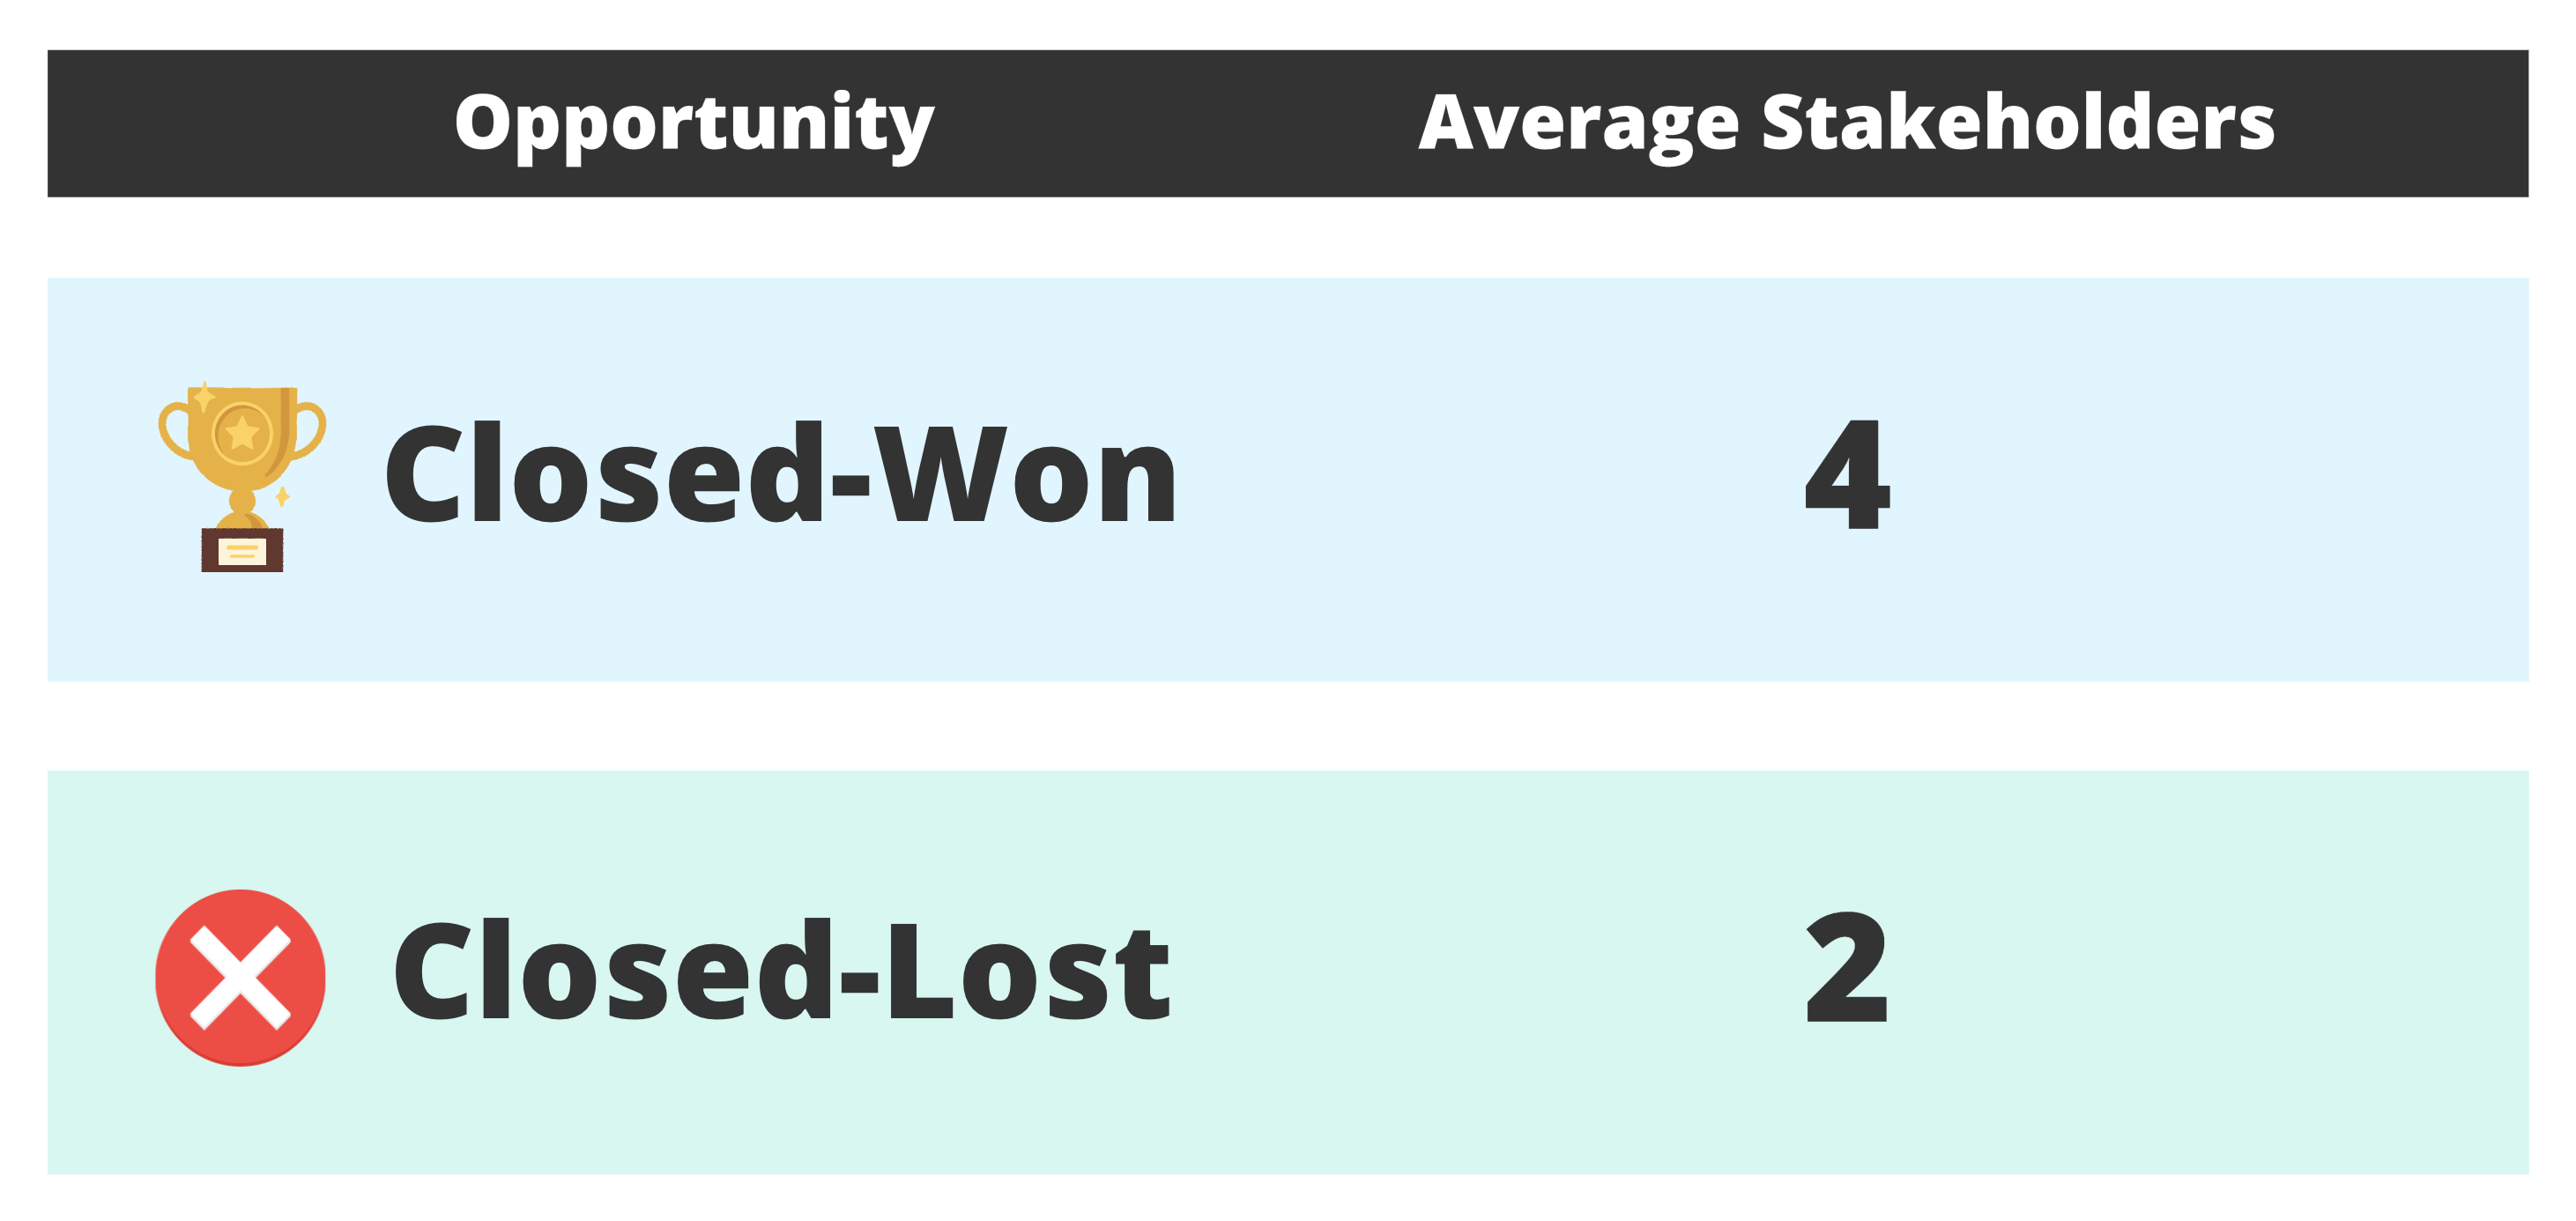 Average stakeholders for closed-won vs. closed-lost